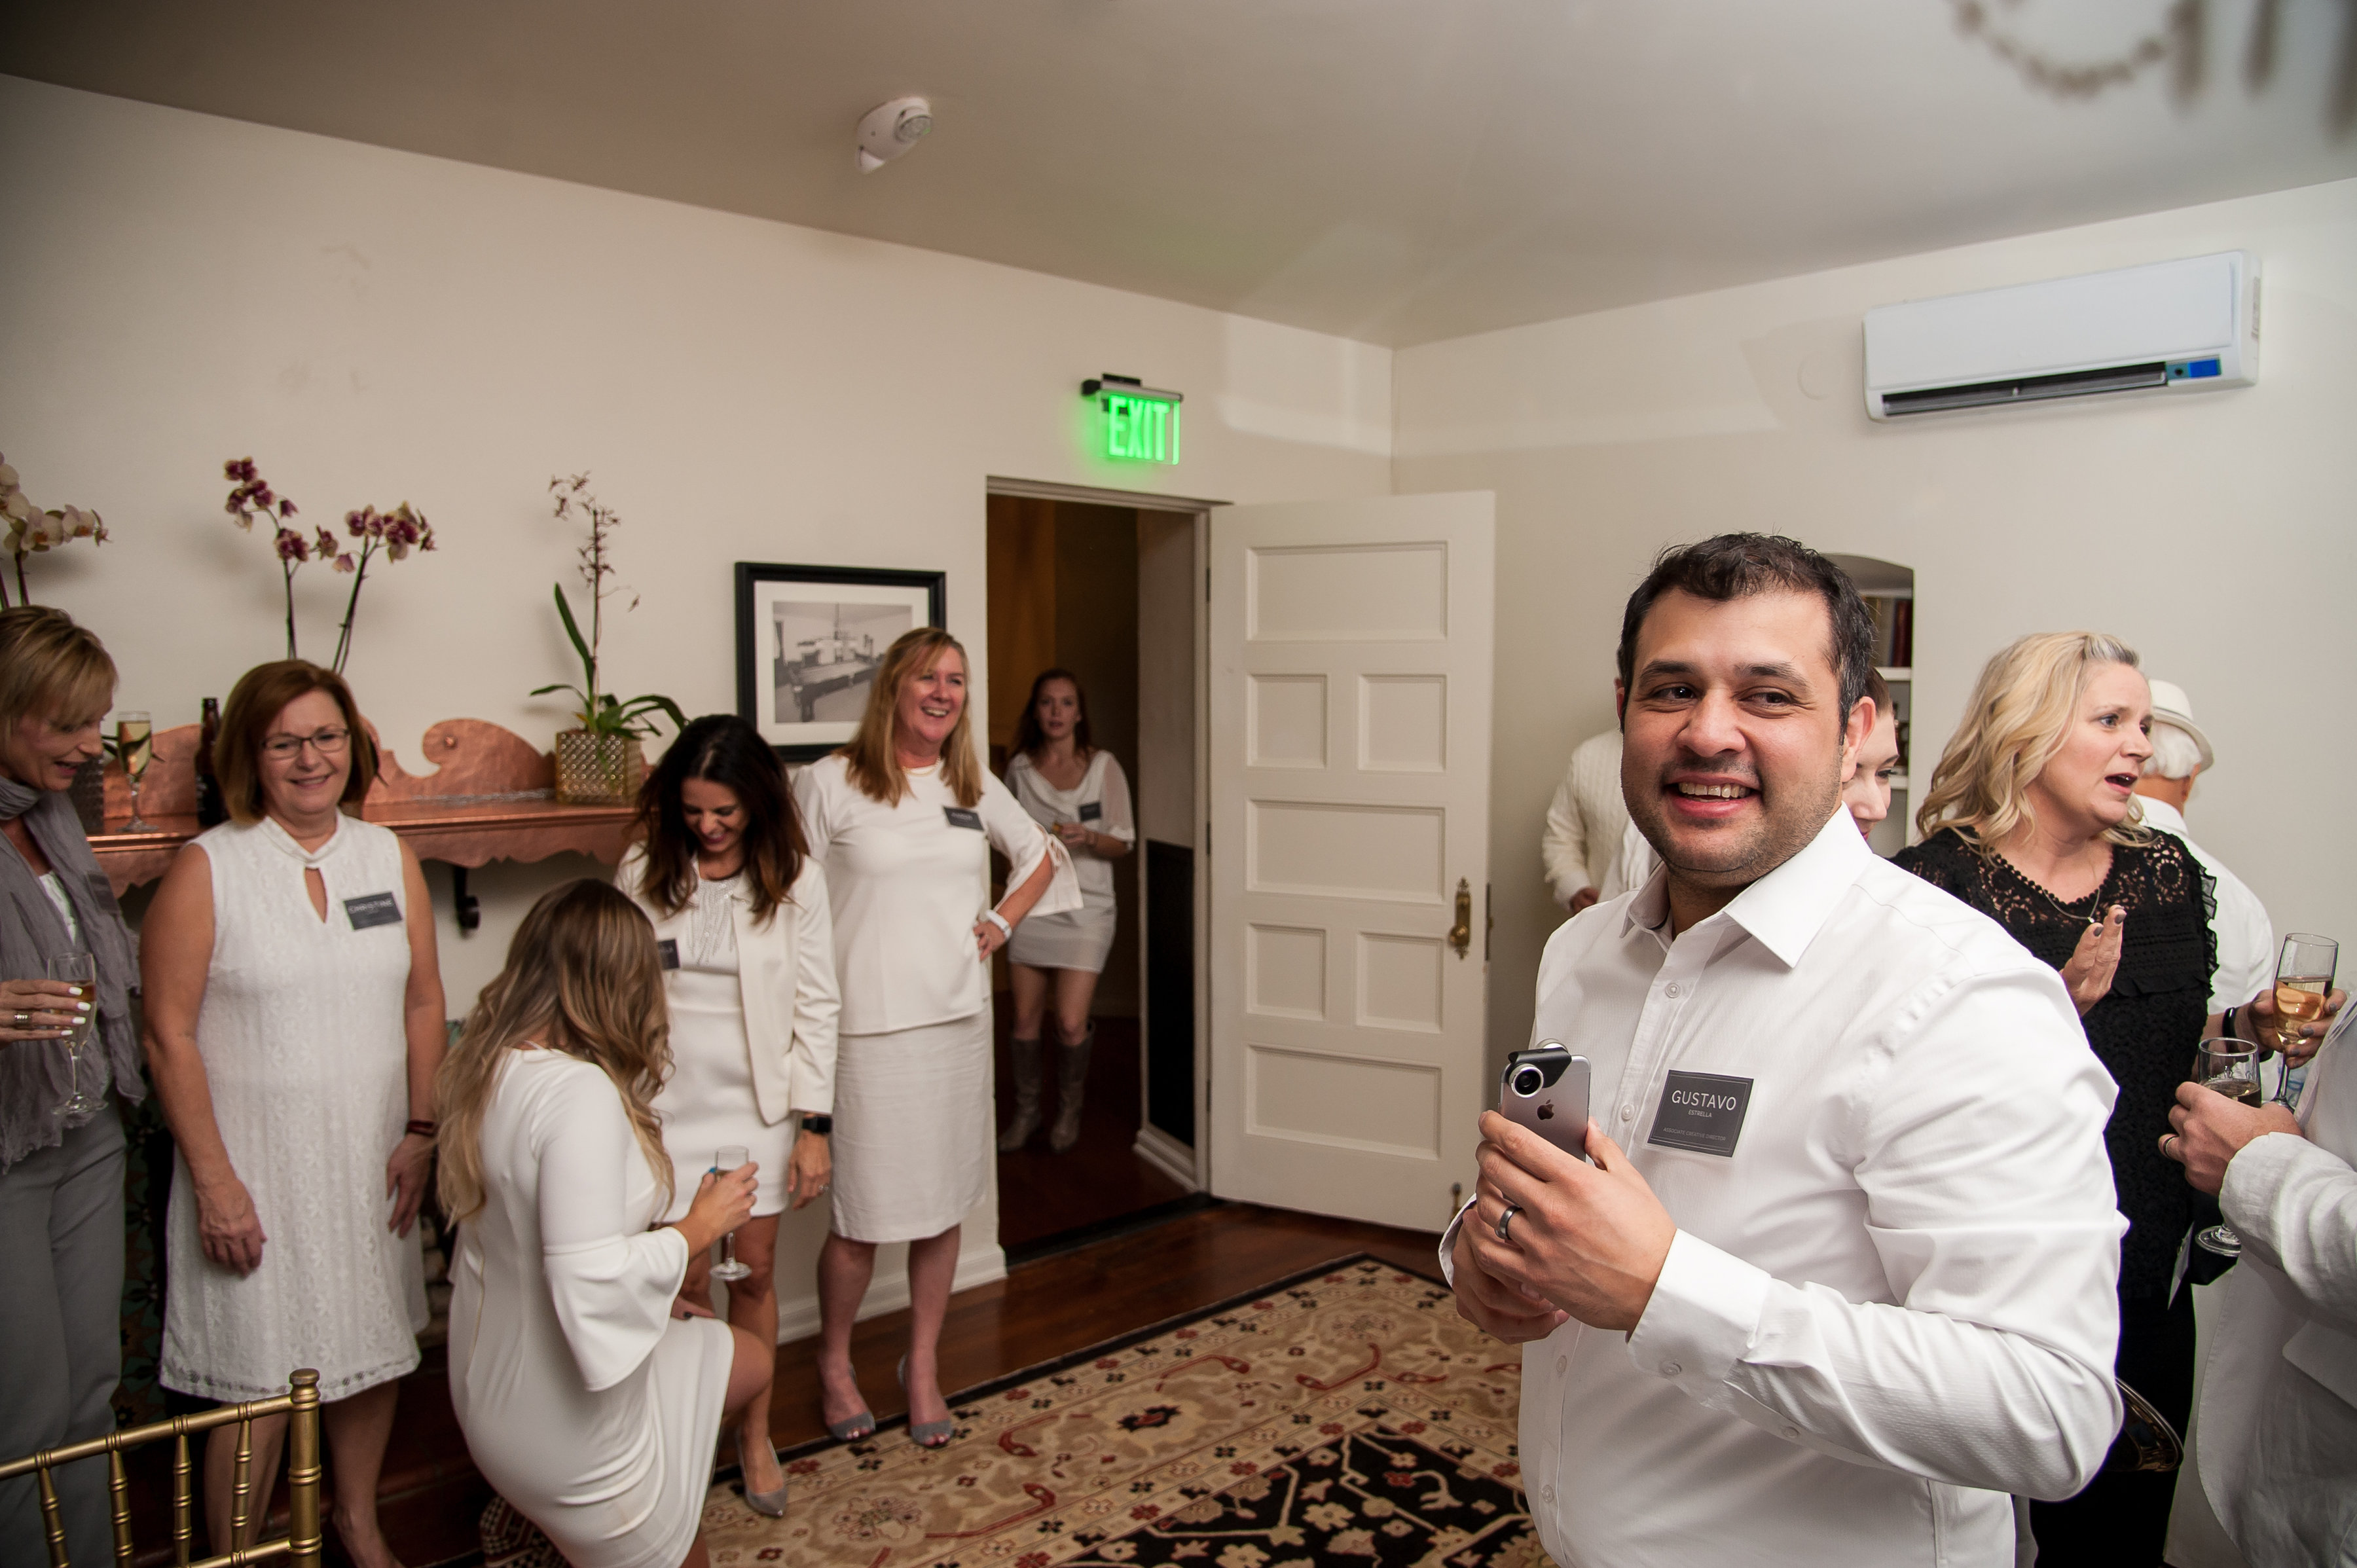 DSC_8179 White Space Party Puts 2017 Into Focus